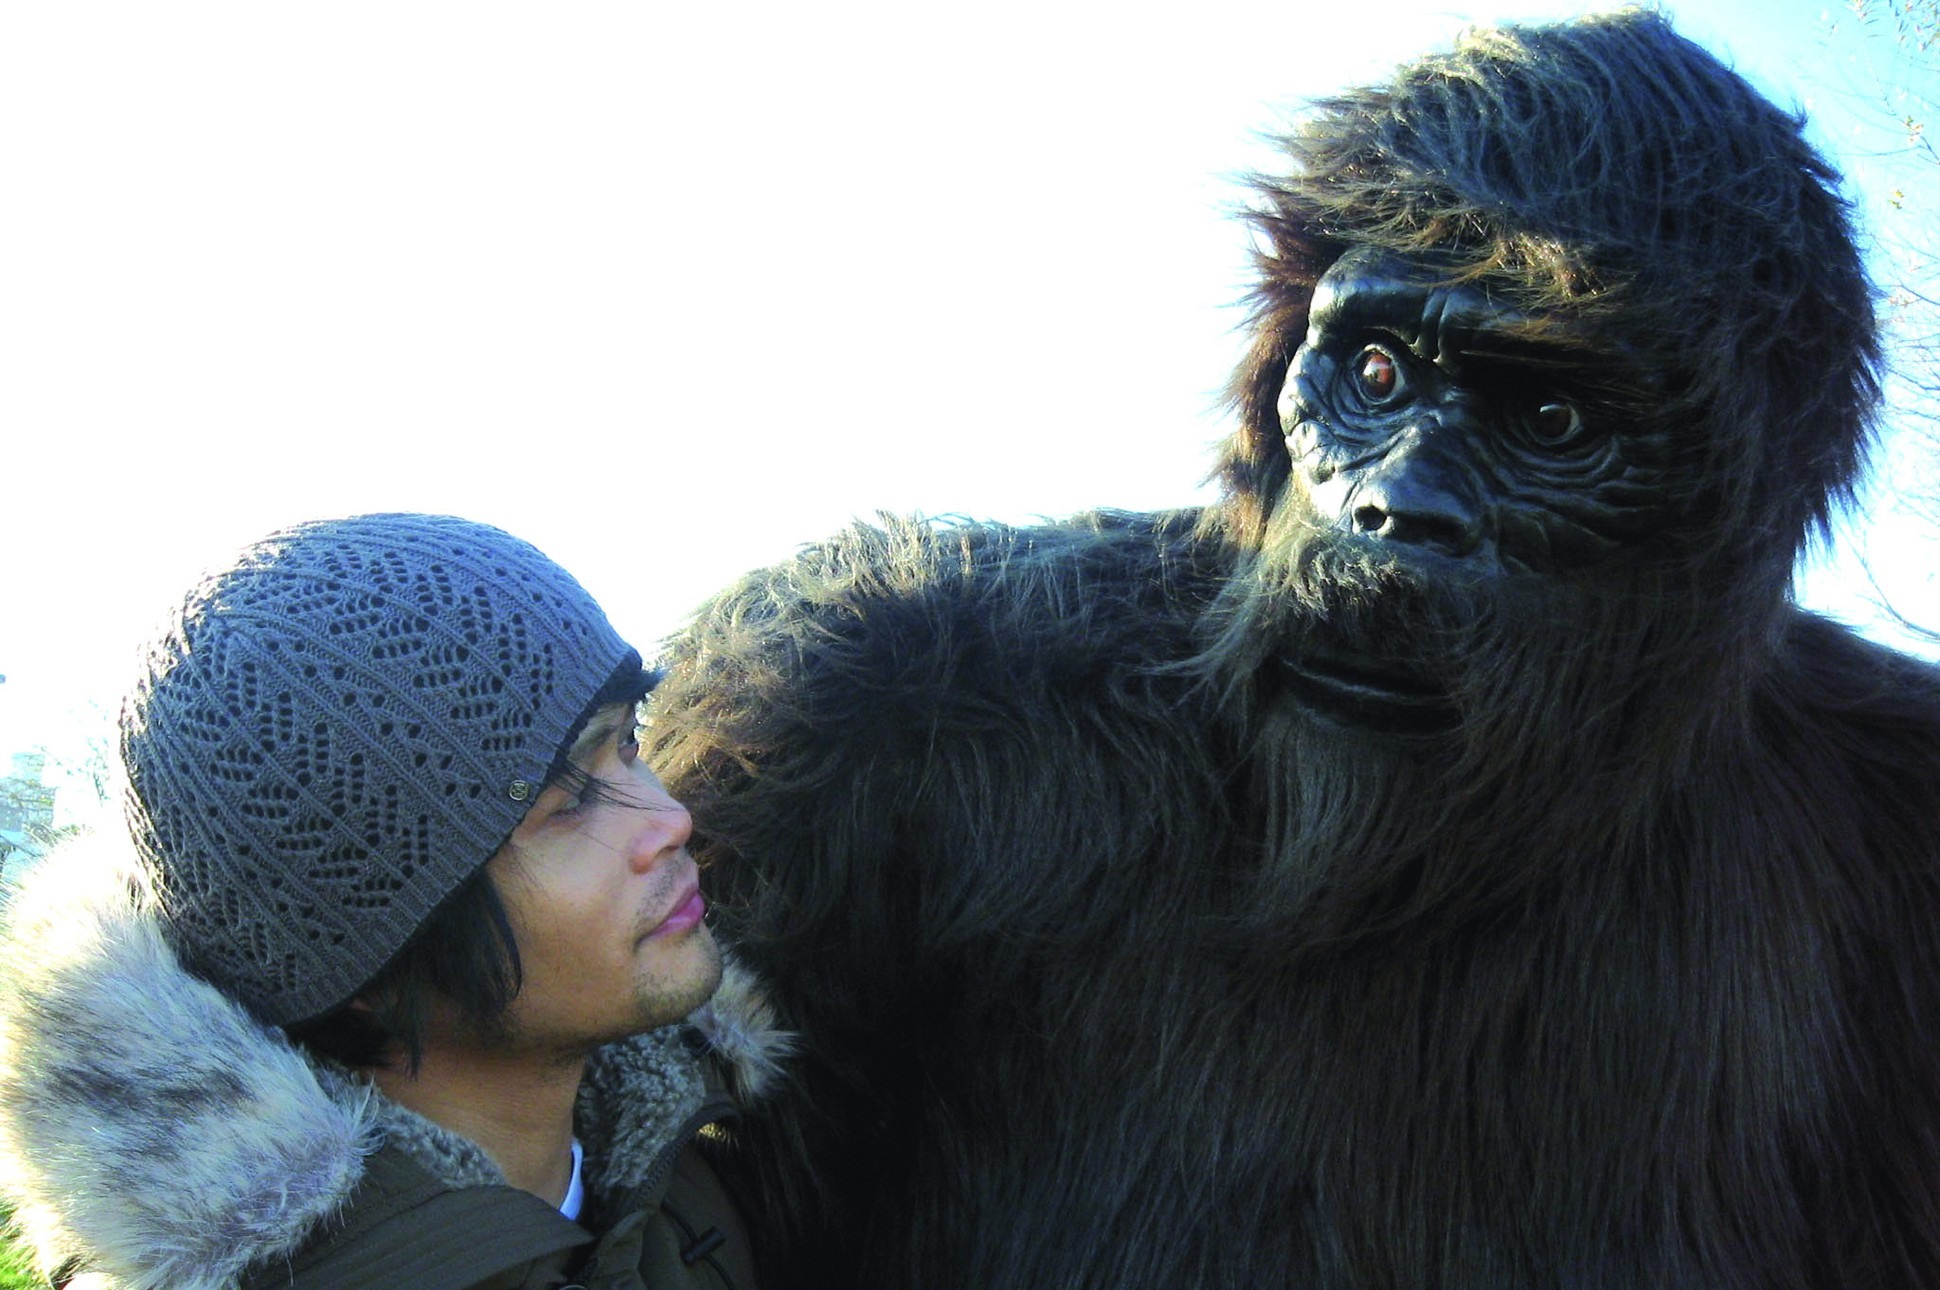 Paolo Javier contributor photo, outdoors, beside someone dressed in a realistic ape costumeape